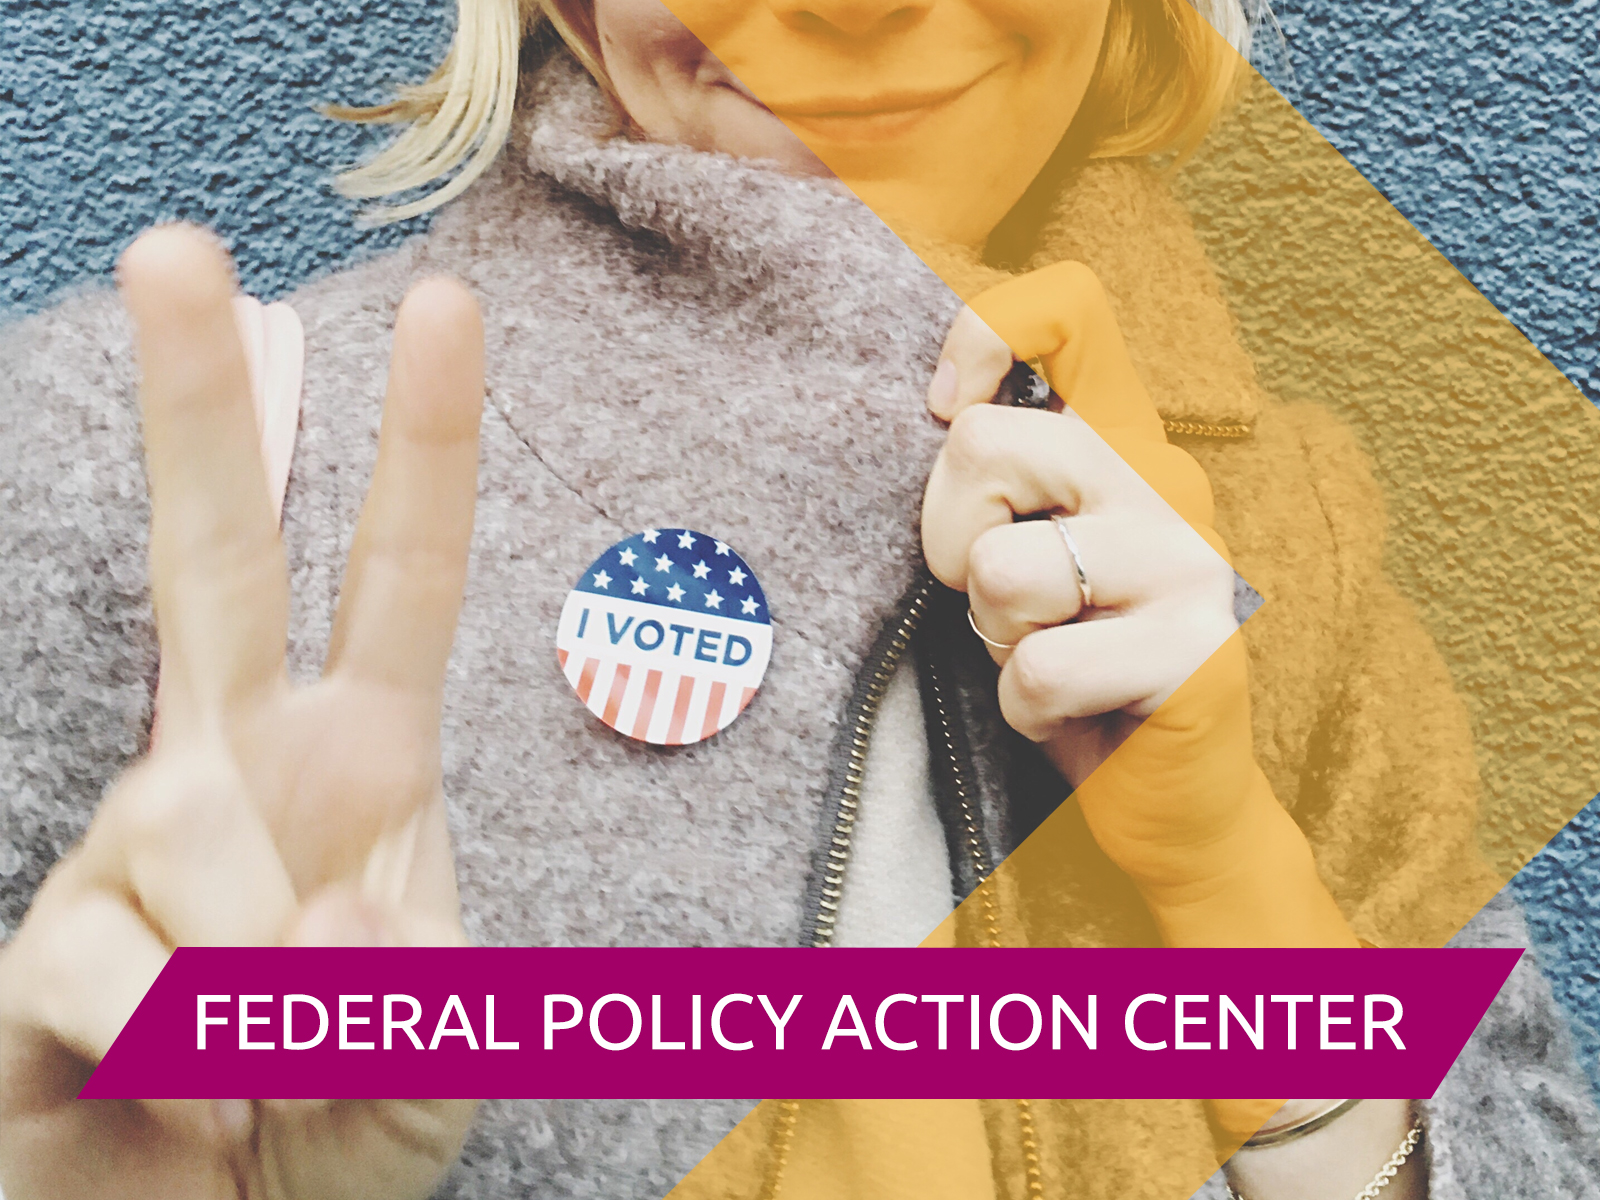 Federal Policy Action Center